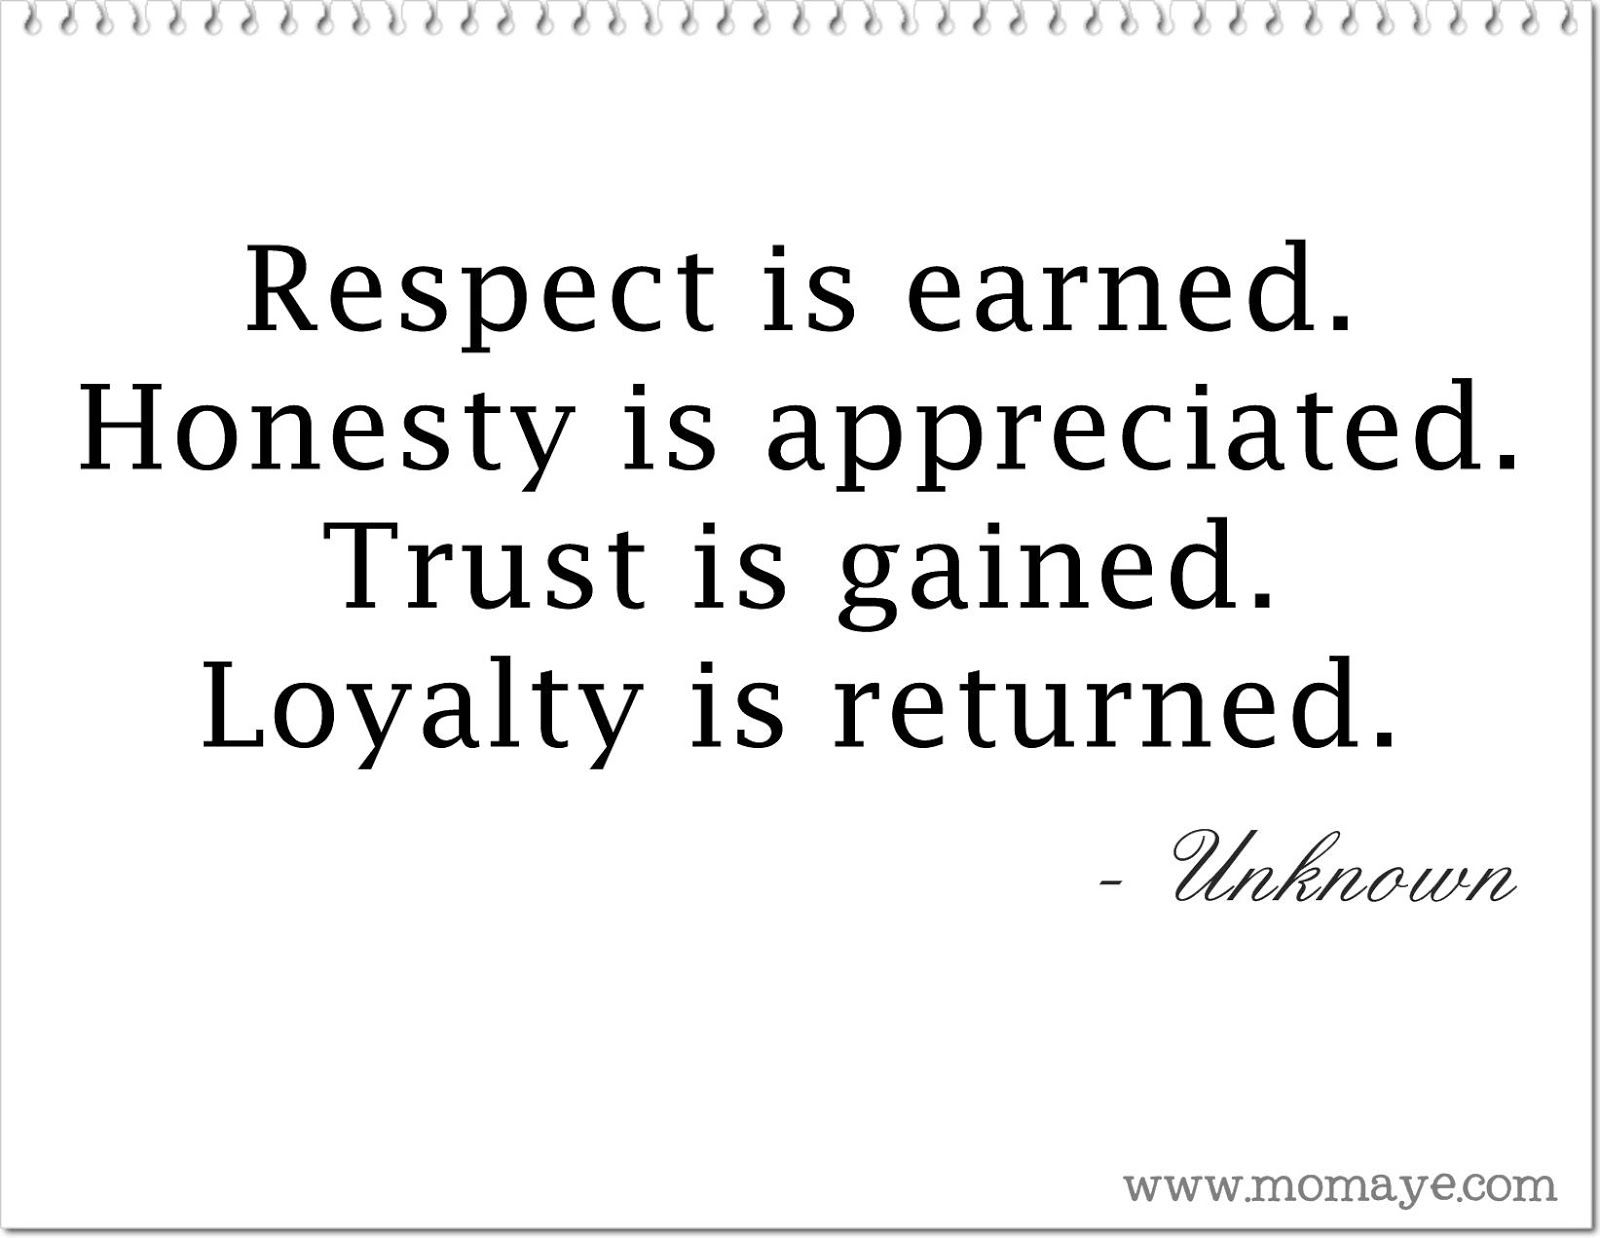 Quotes About Honesty In Friendship Respect Honesty Trust Loyalty  Quotes  Pinterest  Poem And